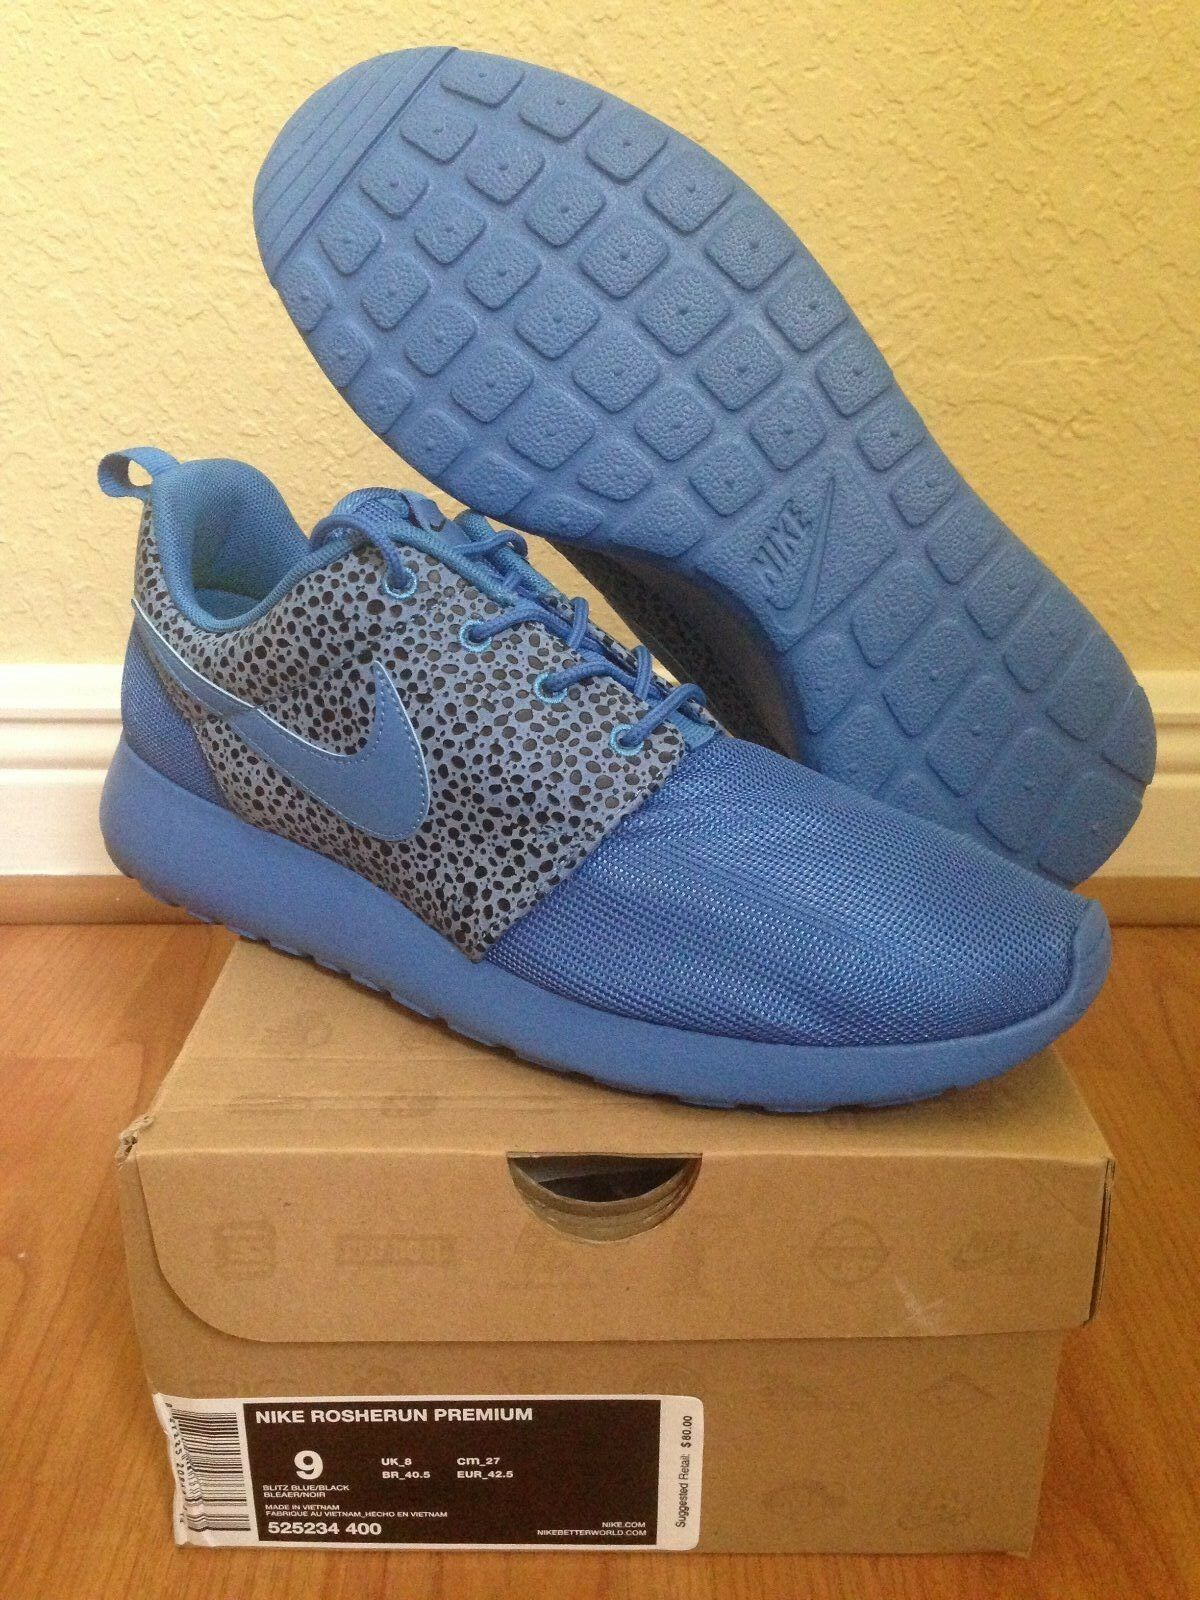 NIKE ROSHE RUN PREMIUM Safari Pack - Blitz Blue - Sz 9 - New DS - Free Ship